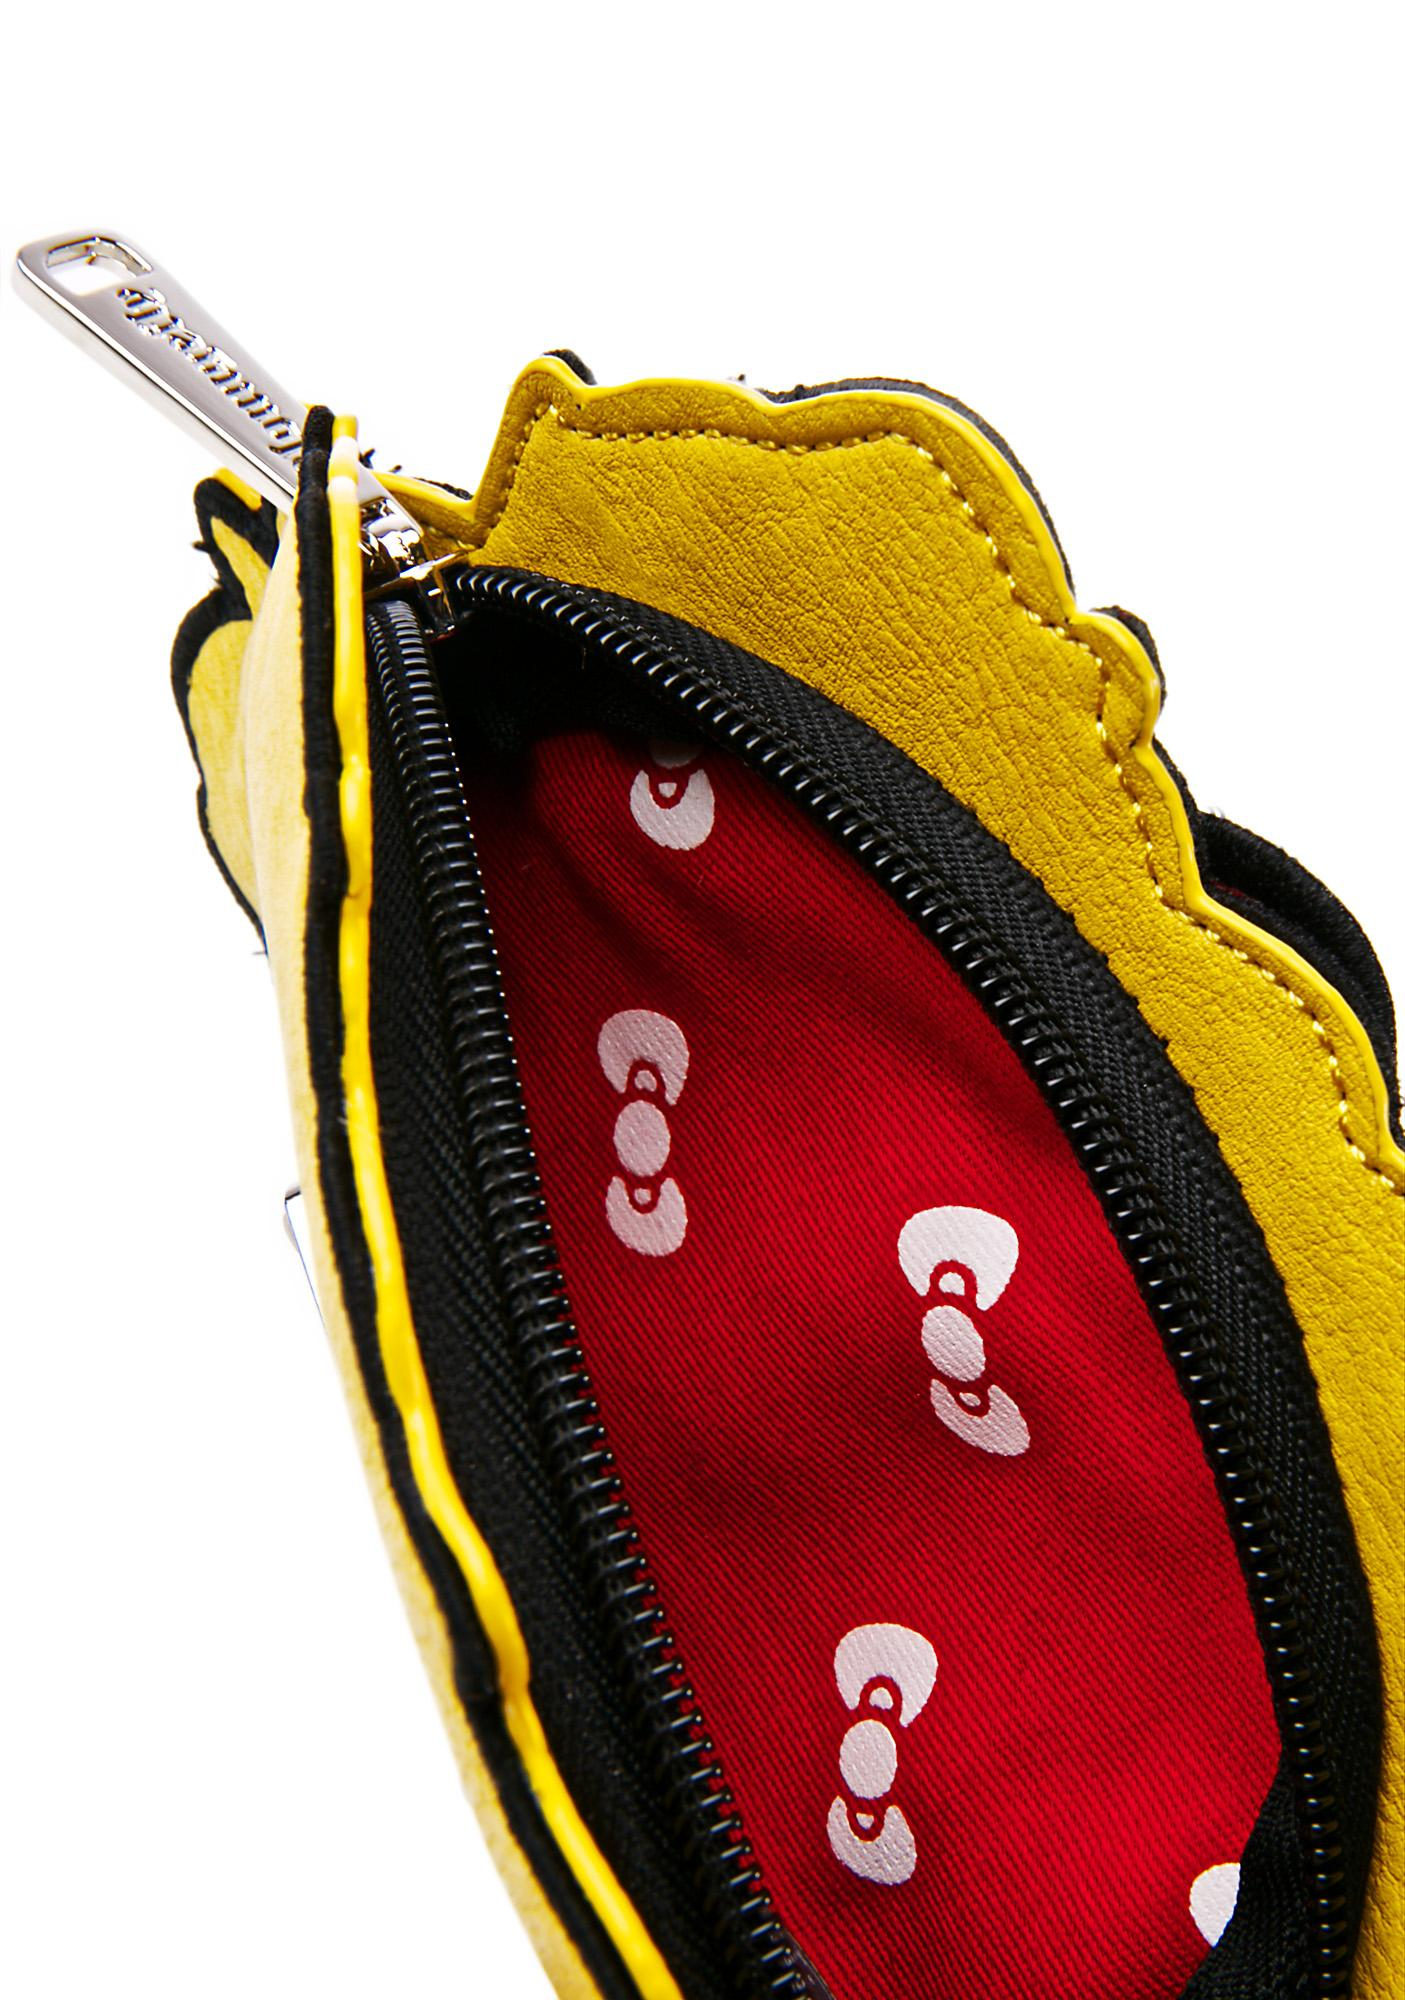 Loungefly X Hello Kitty Taco Wallet